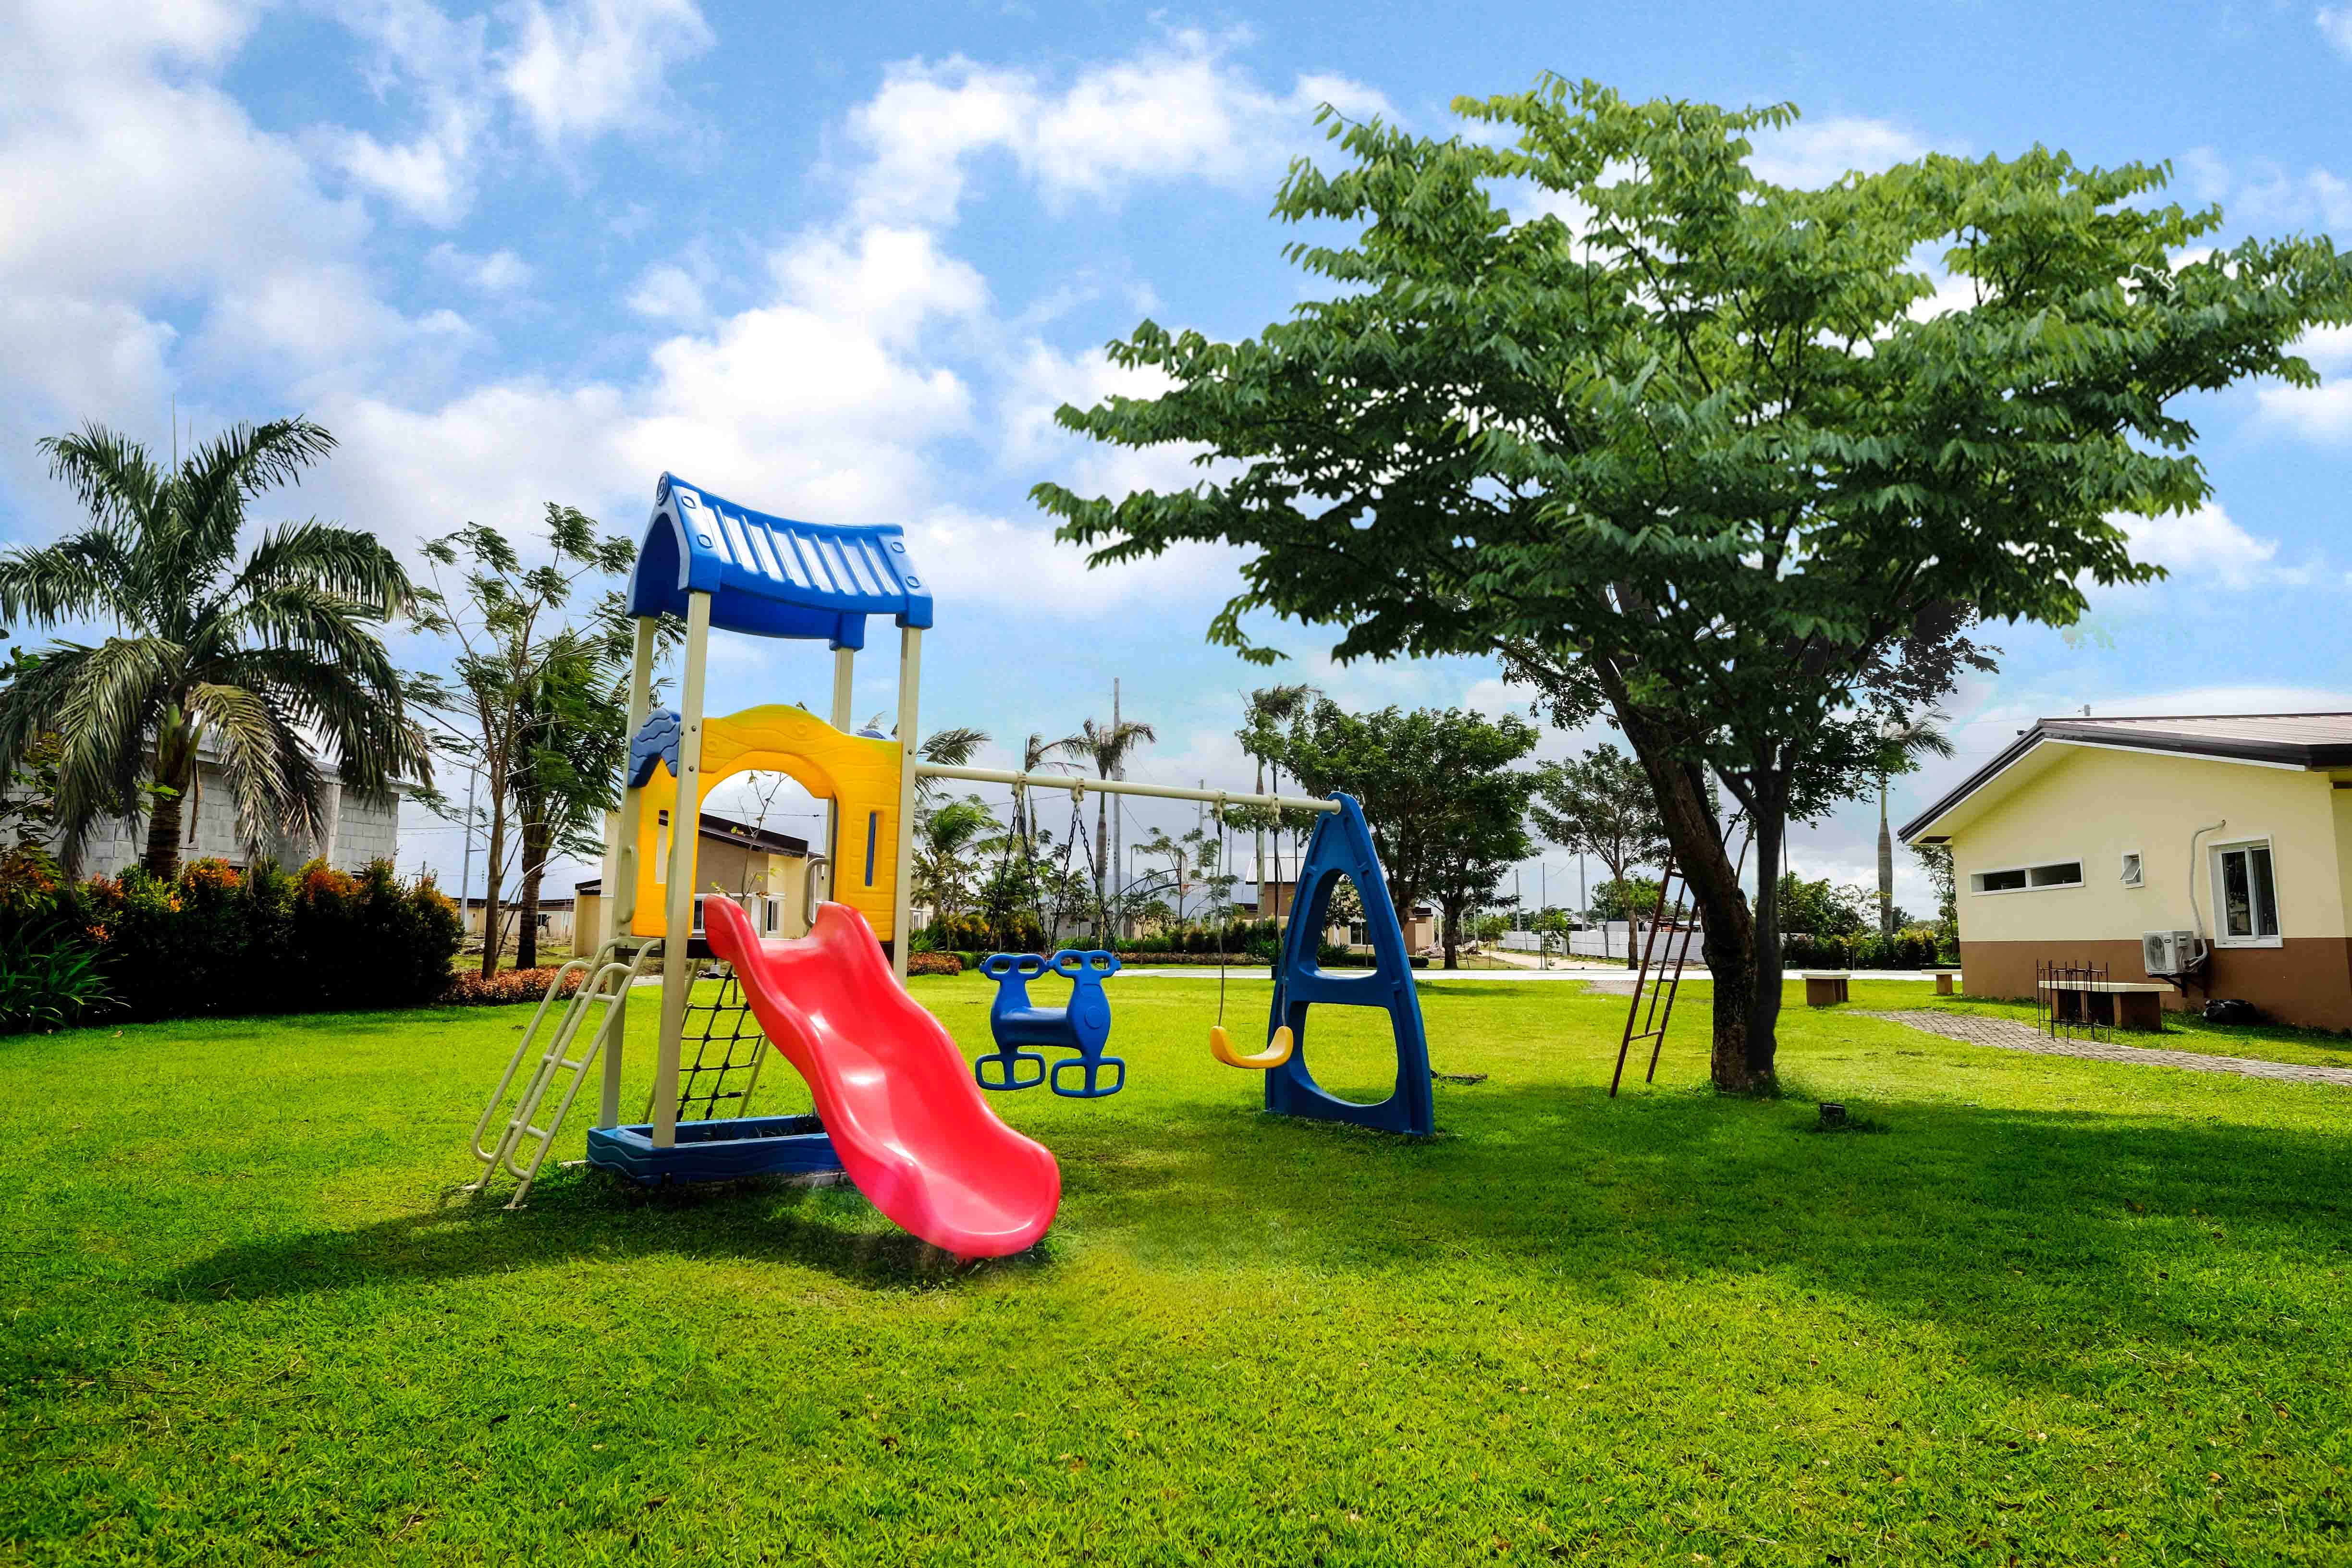 The children's playground of Stonewell Acacia Homes